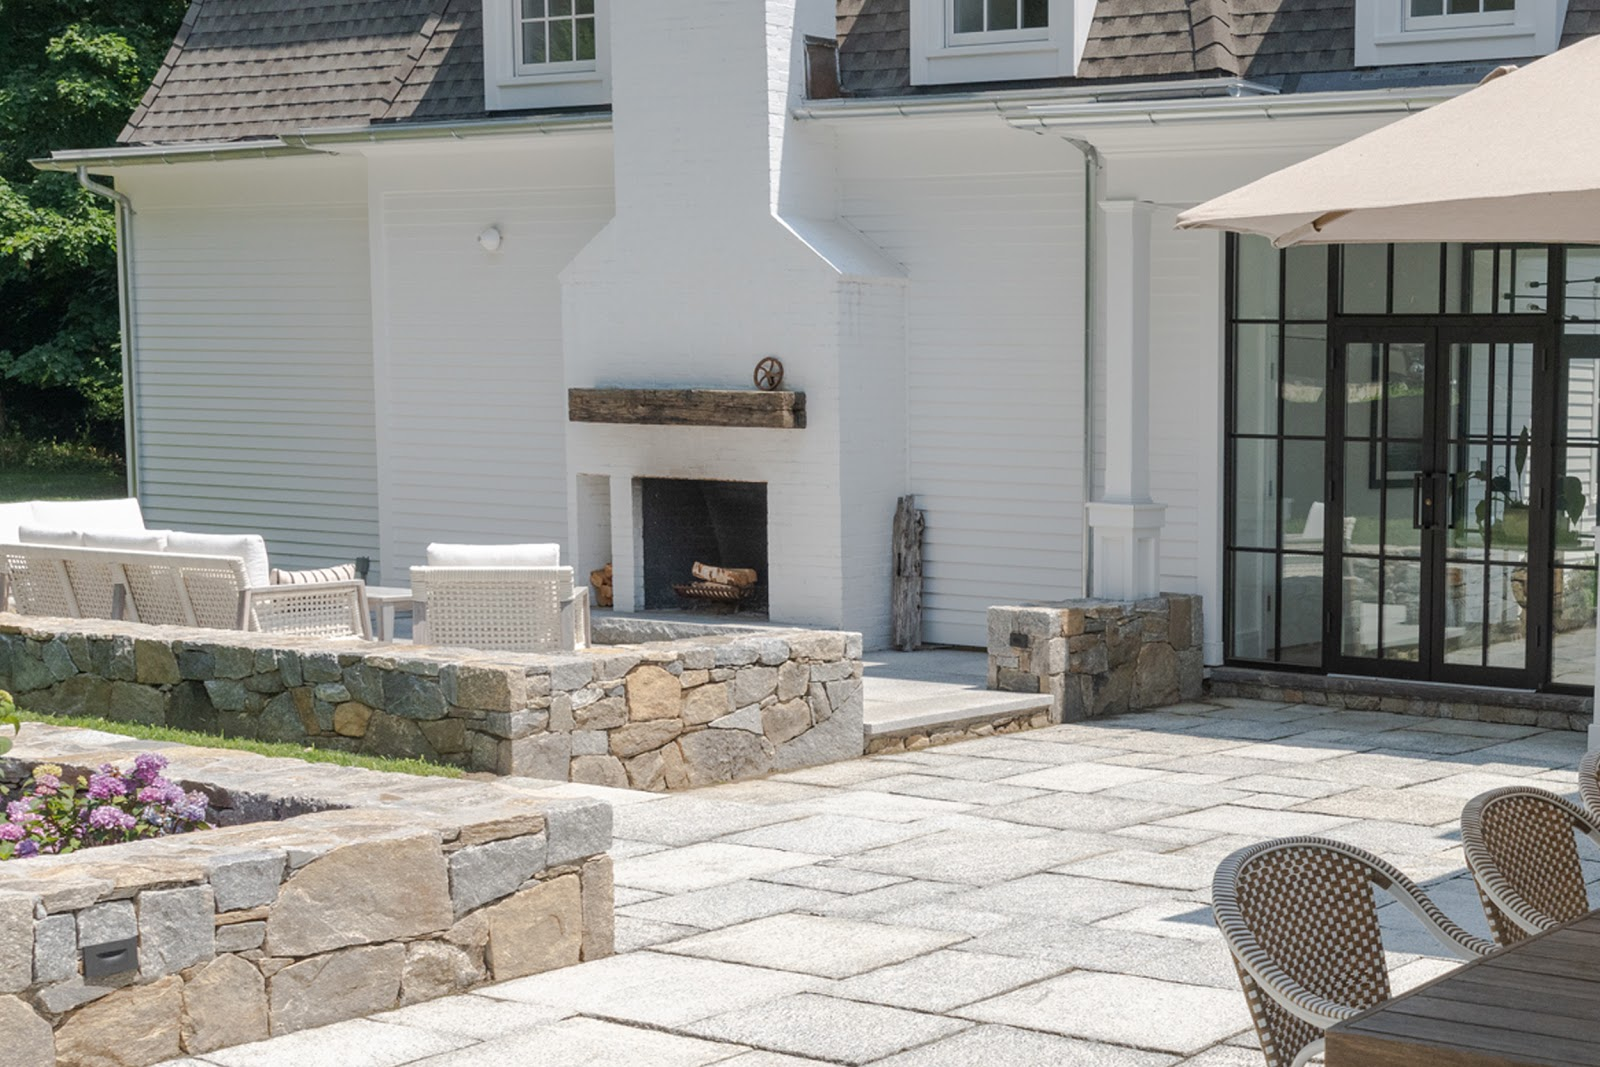 Eva Amurri Historic Connecticut Home Renovation Outdoor Living Space with Granite and Natural Stone